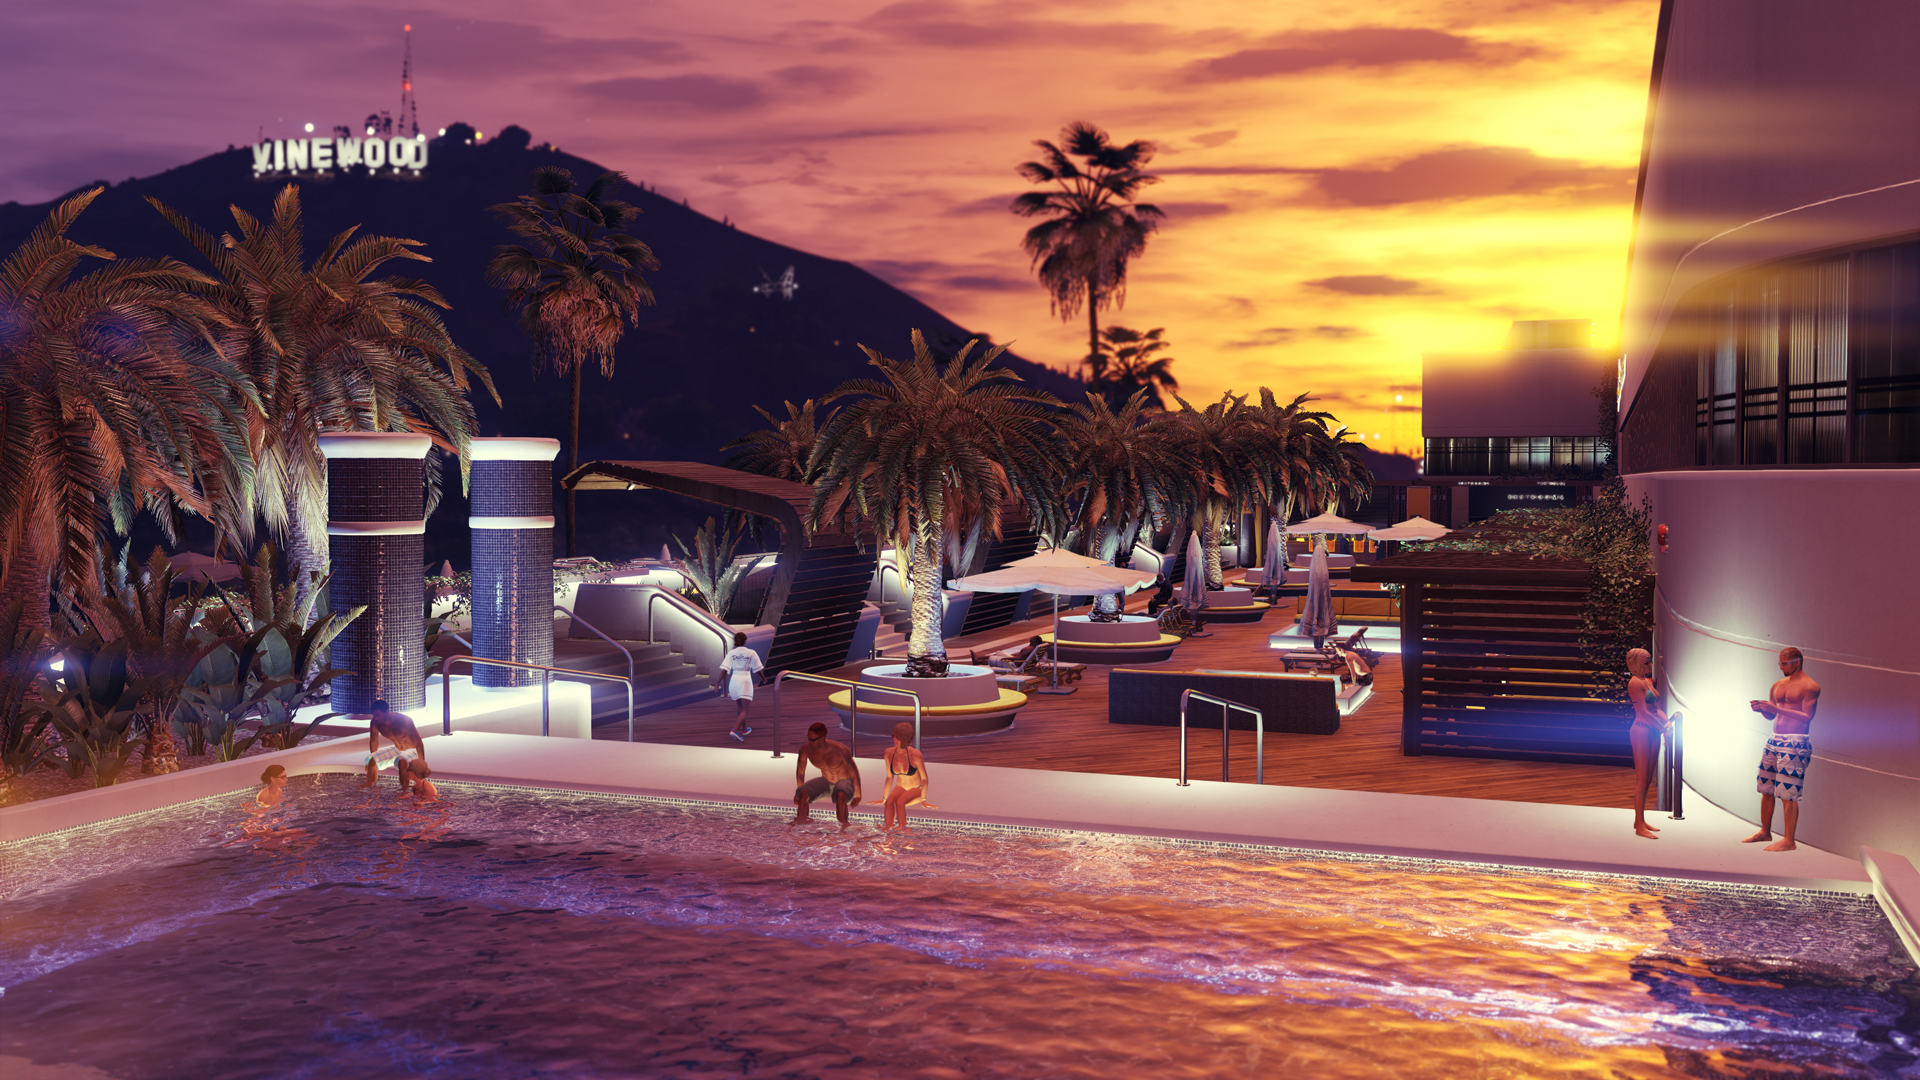 GTA Online - a lavish house with an outdoor pool at sunset, with the Vinewood sign in the background